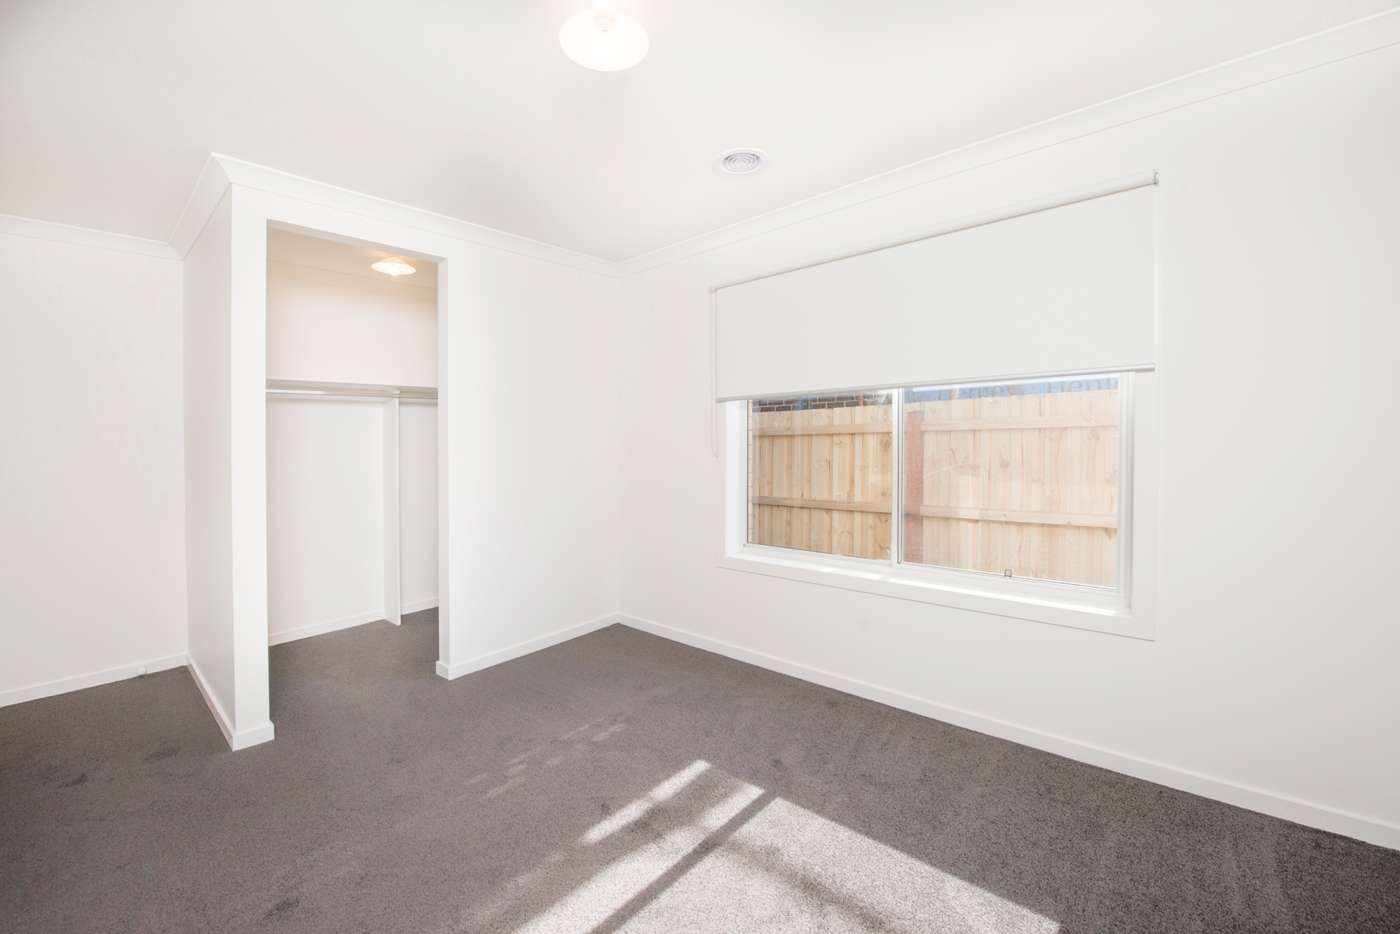 Seventh view of Homely house listing, 45 Harlem Circuit, Point Cook VIC 3030